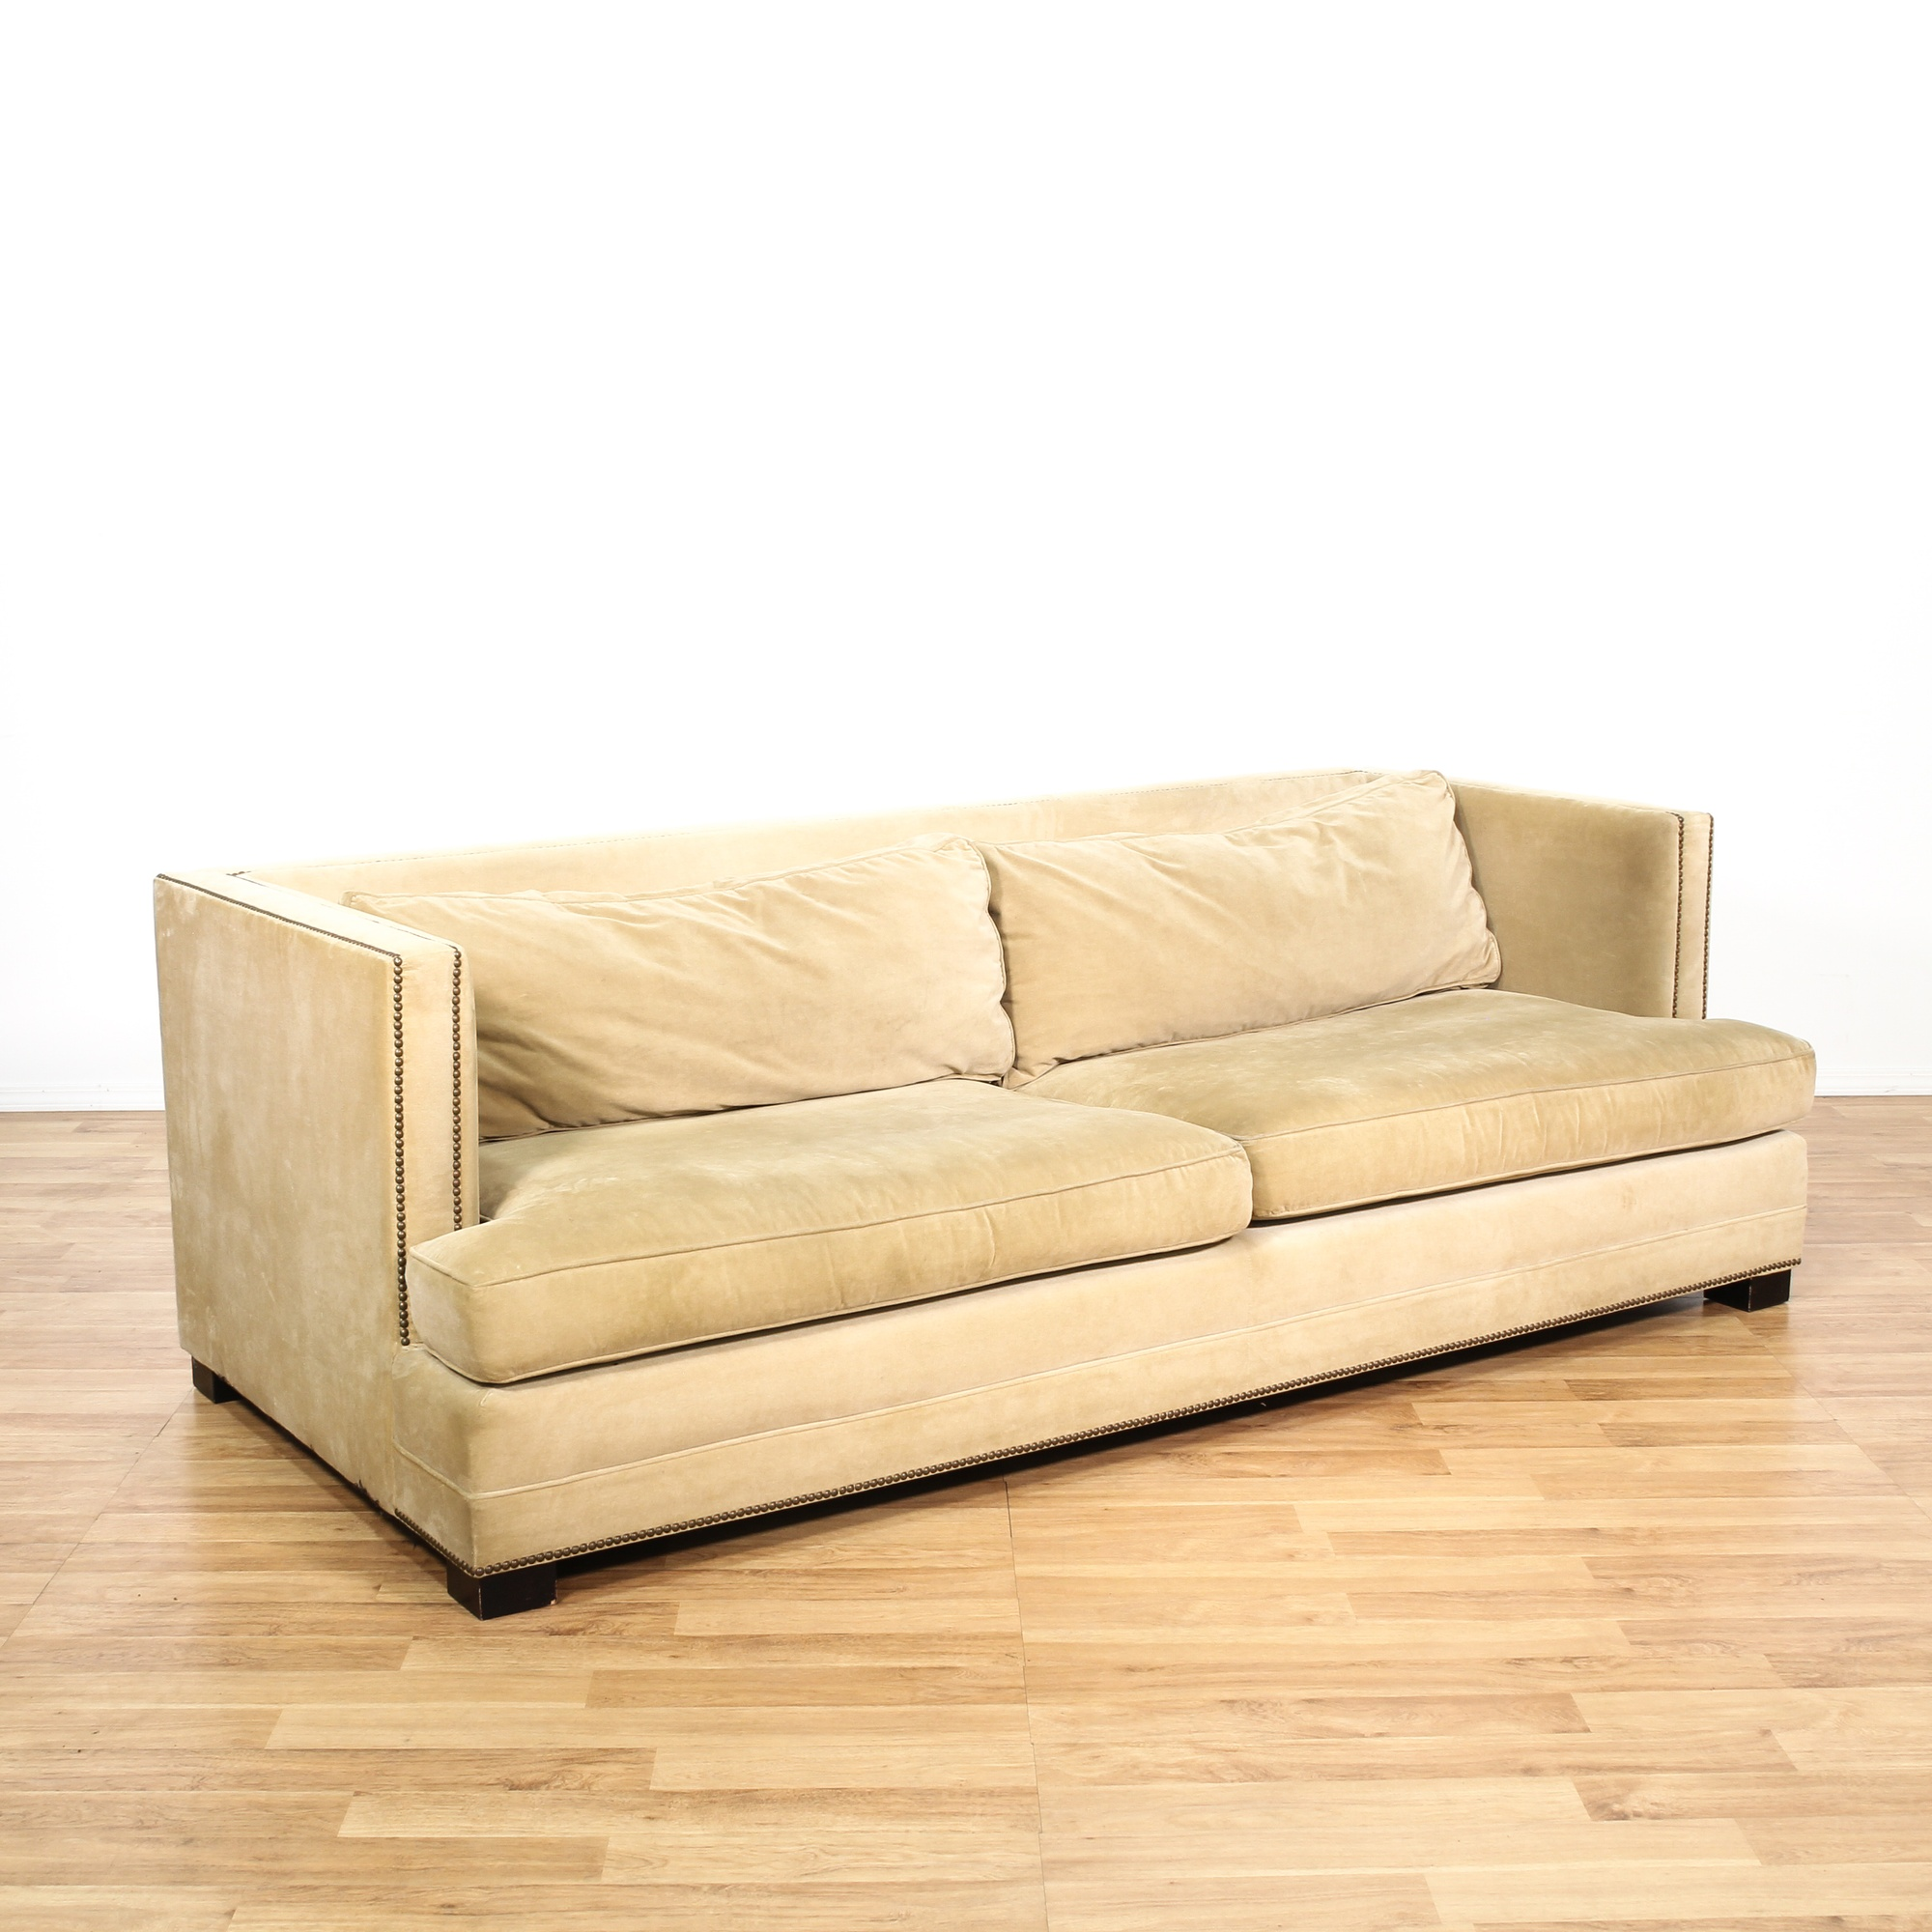 Mitchell and gold studded upholstered sofa loveseat for Studded sofa